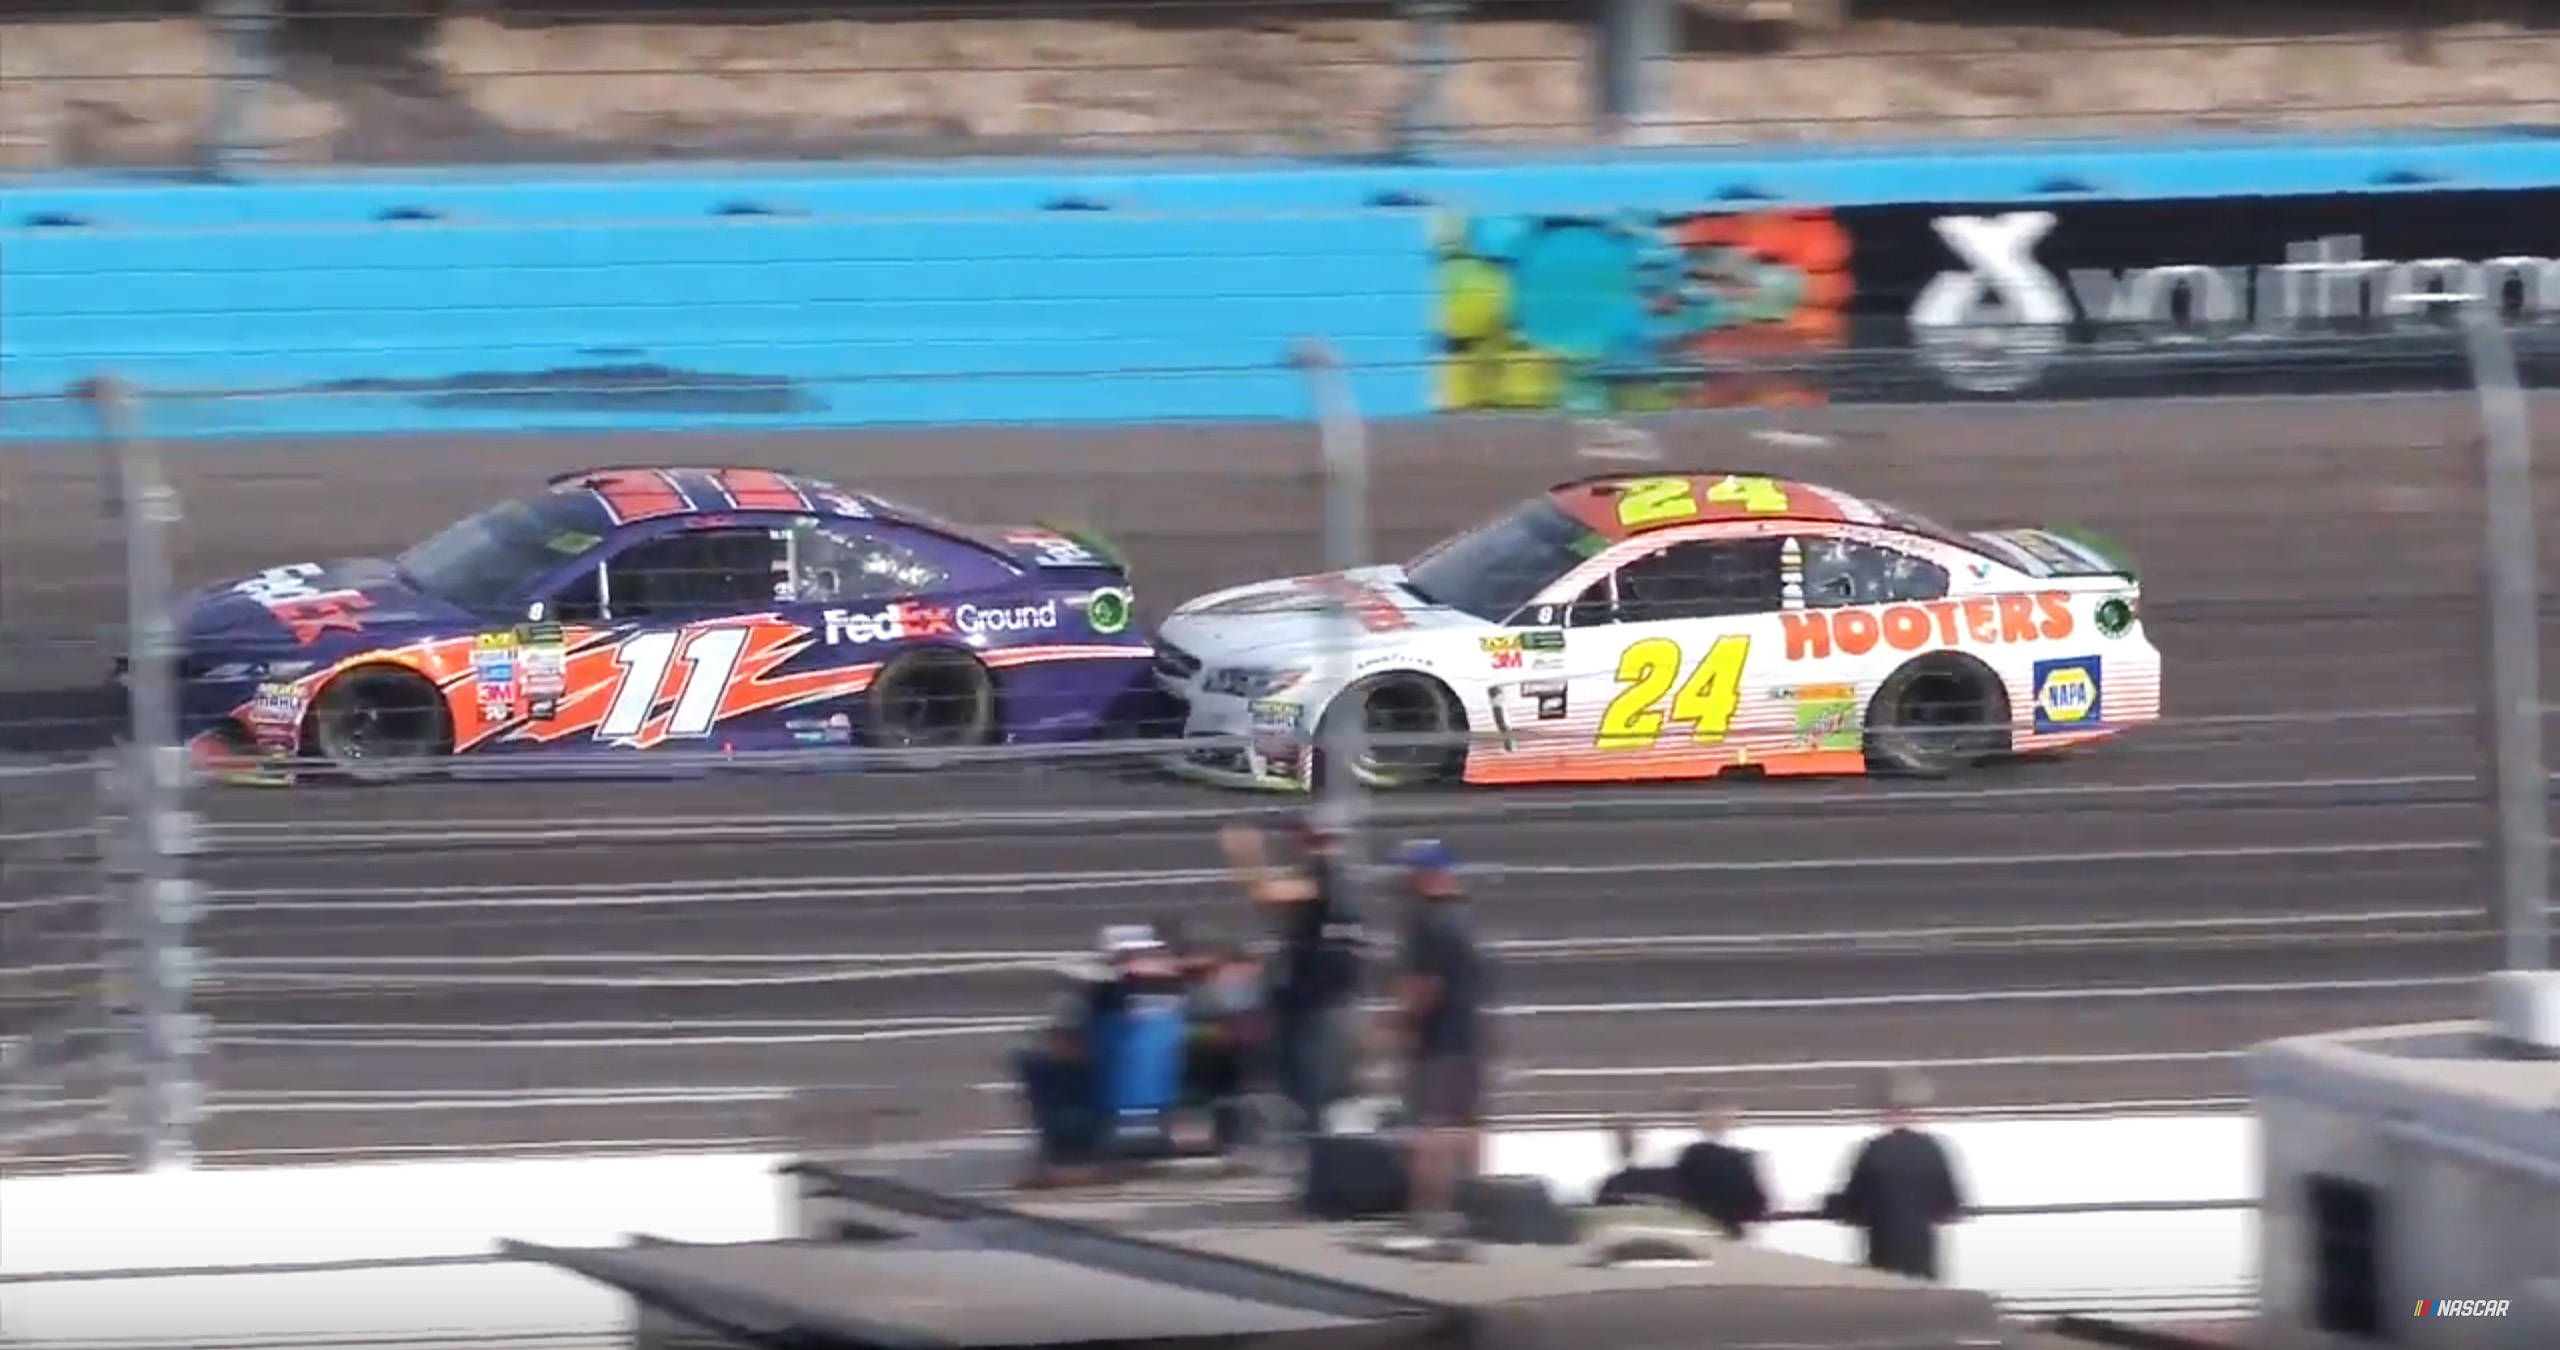 Chase Elliott vs Denny Hamlin at Phoenix International Raceway